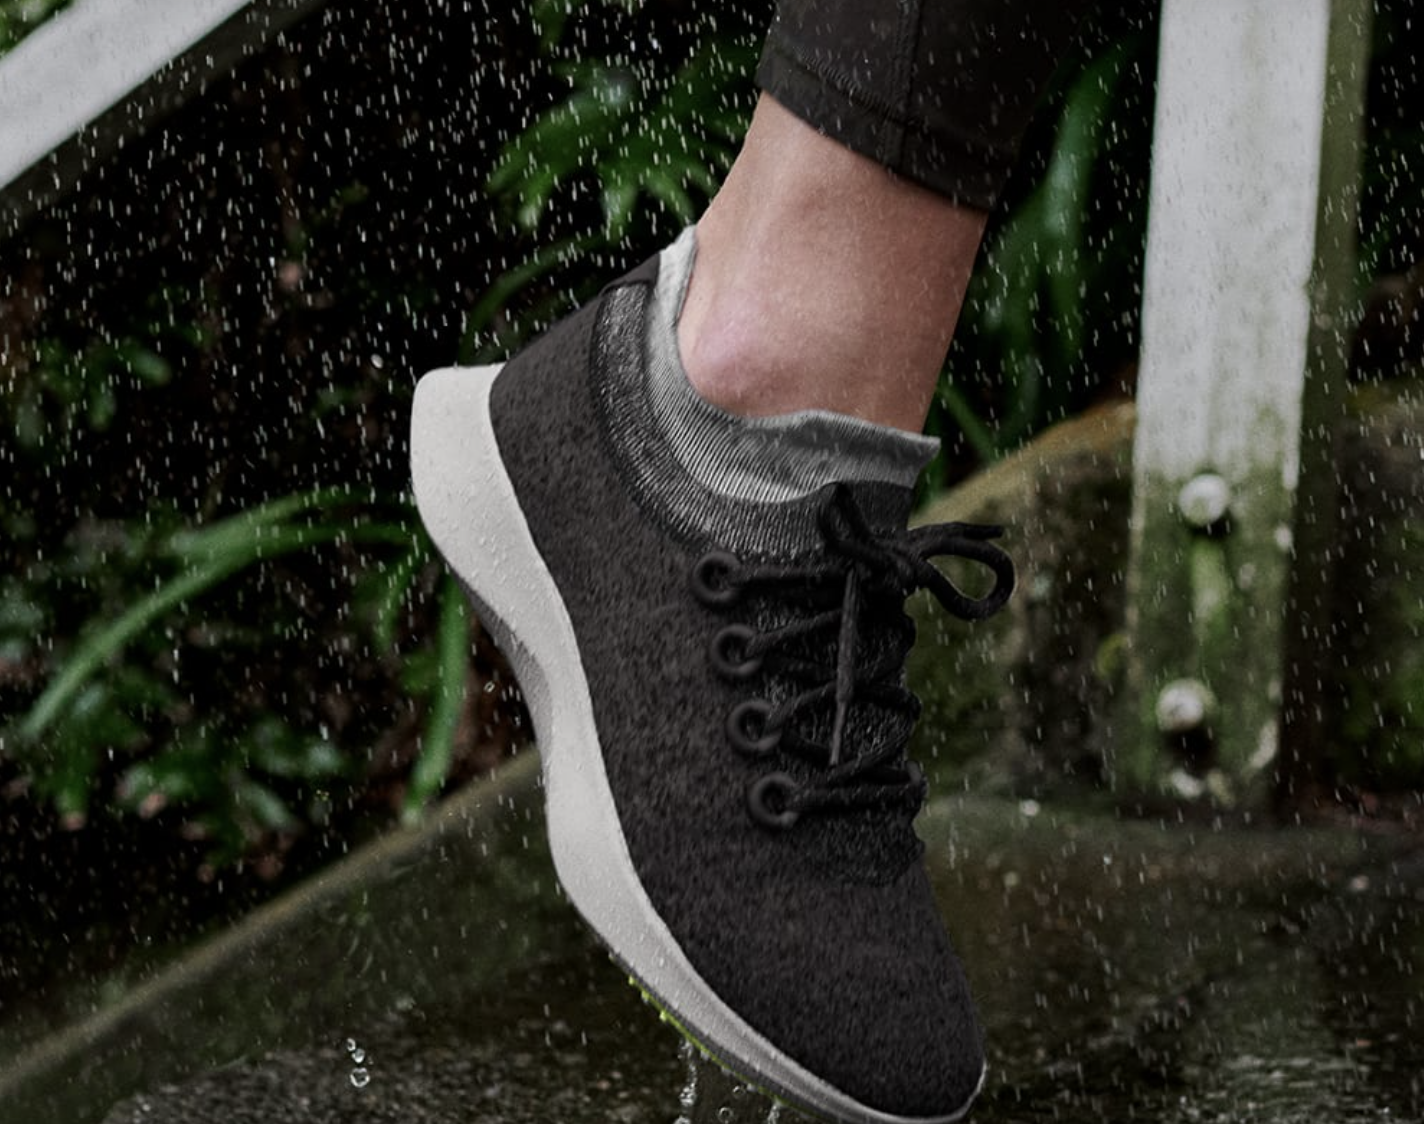 Sneaker Brand Allbirds Introduces the World's First Plant-Based Leather Alternative